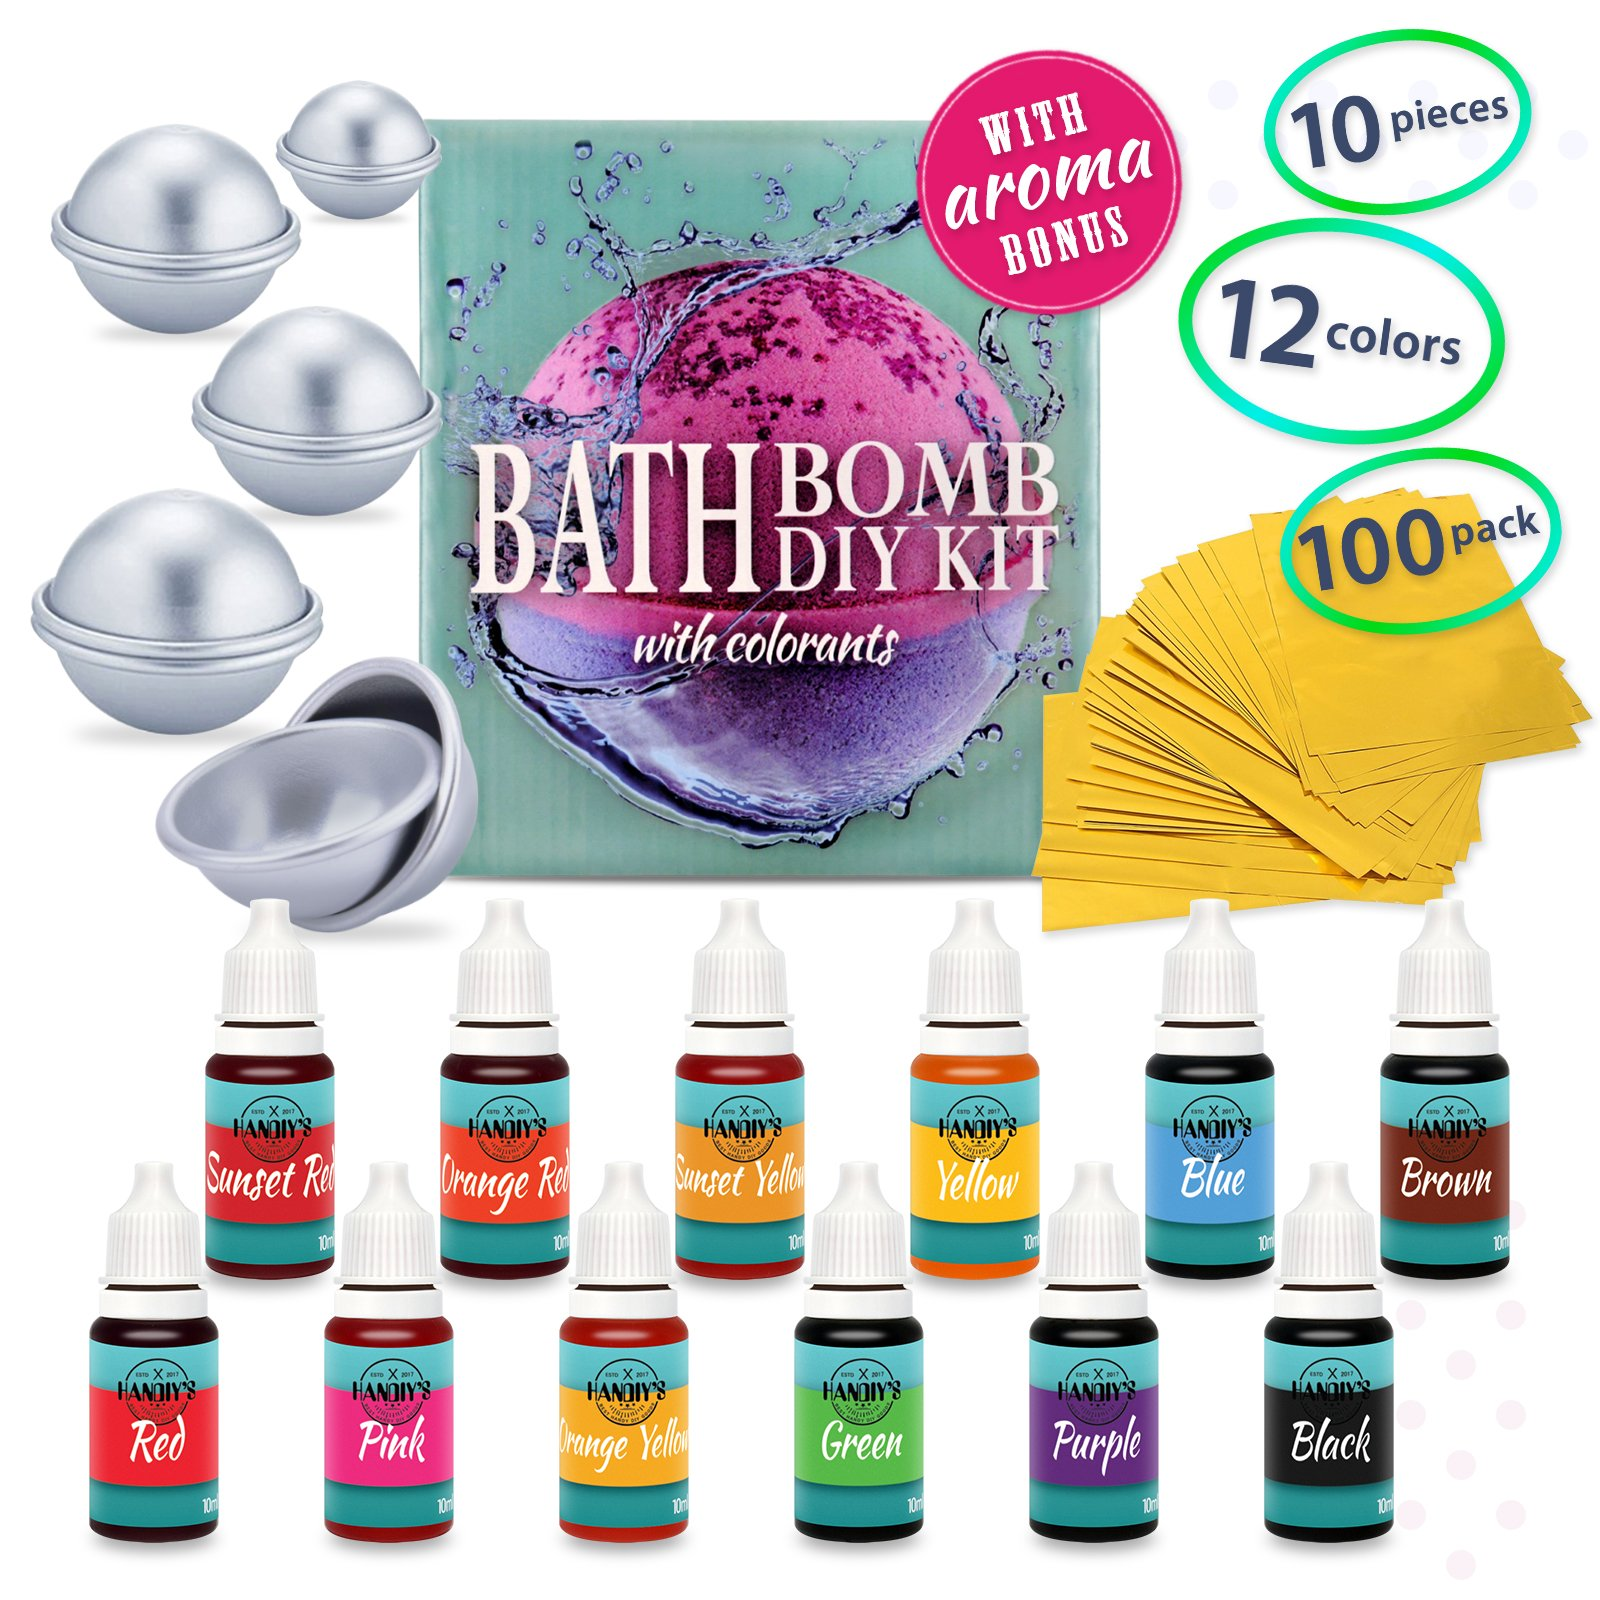 DIY Bath Bomb Kit - Bath Bomb Mold Kit with Dried Flowers for Bath Bomb Making - Bath Bomb Molds for Bath Bombs - Bath Bomb Making Kit with Soap Dye Colorants, Shrink Wrap Bags, Present Wrapping Paper by HANDIY'S